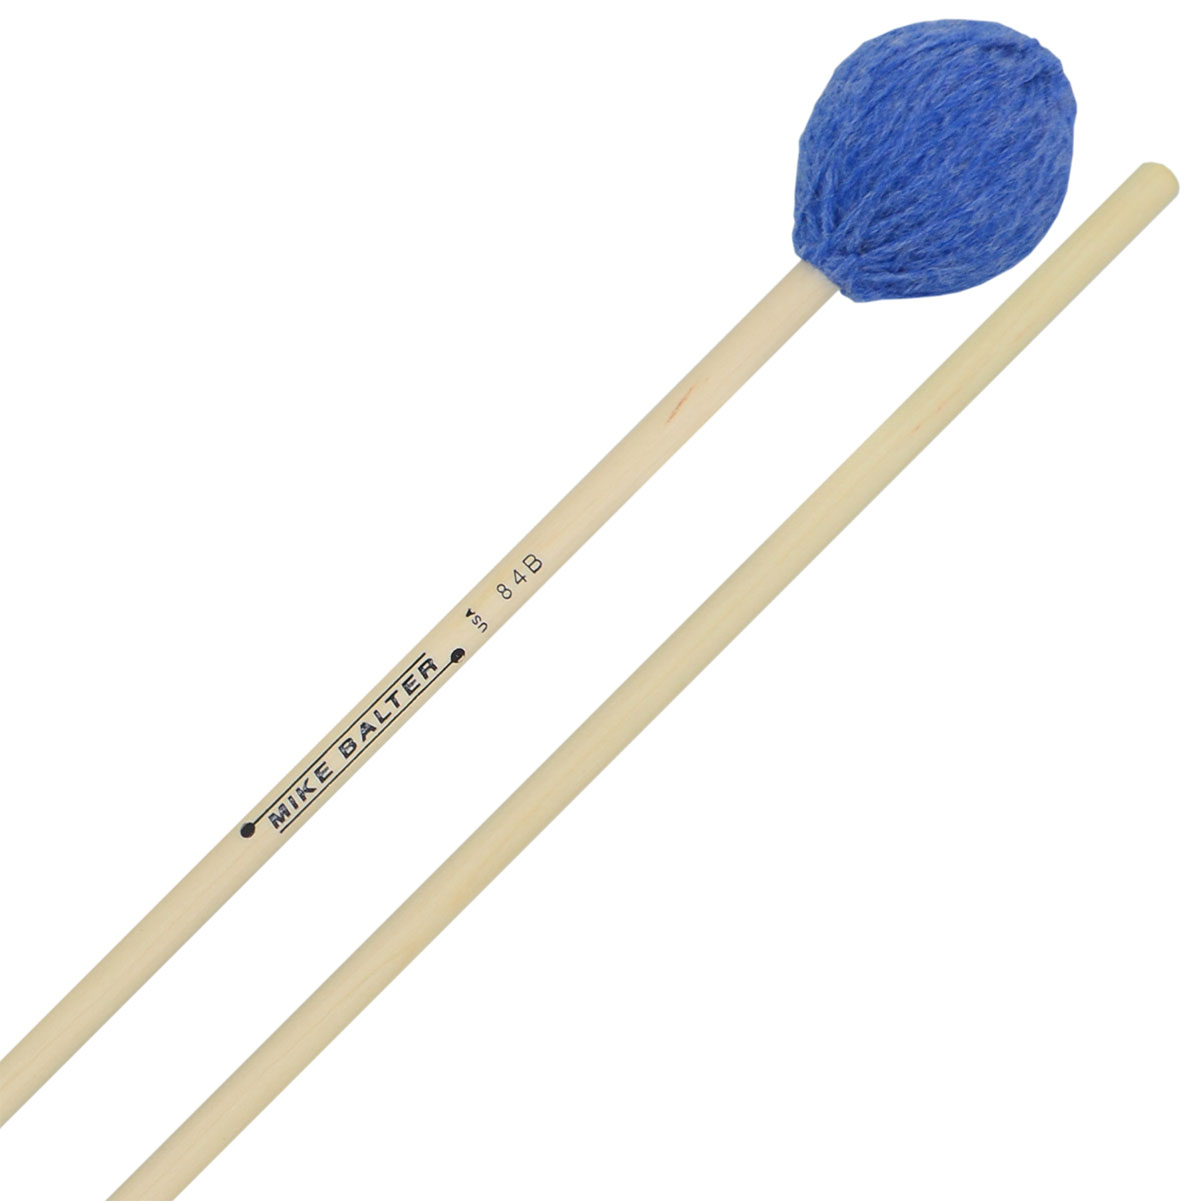 Mike Balter Contemporary Series Medium Soft Marimba Mallets with Birch Handles